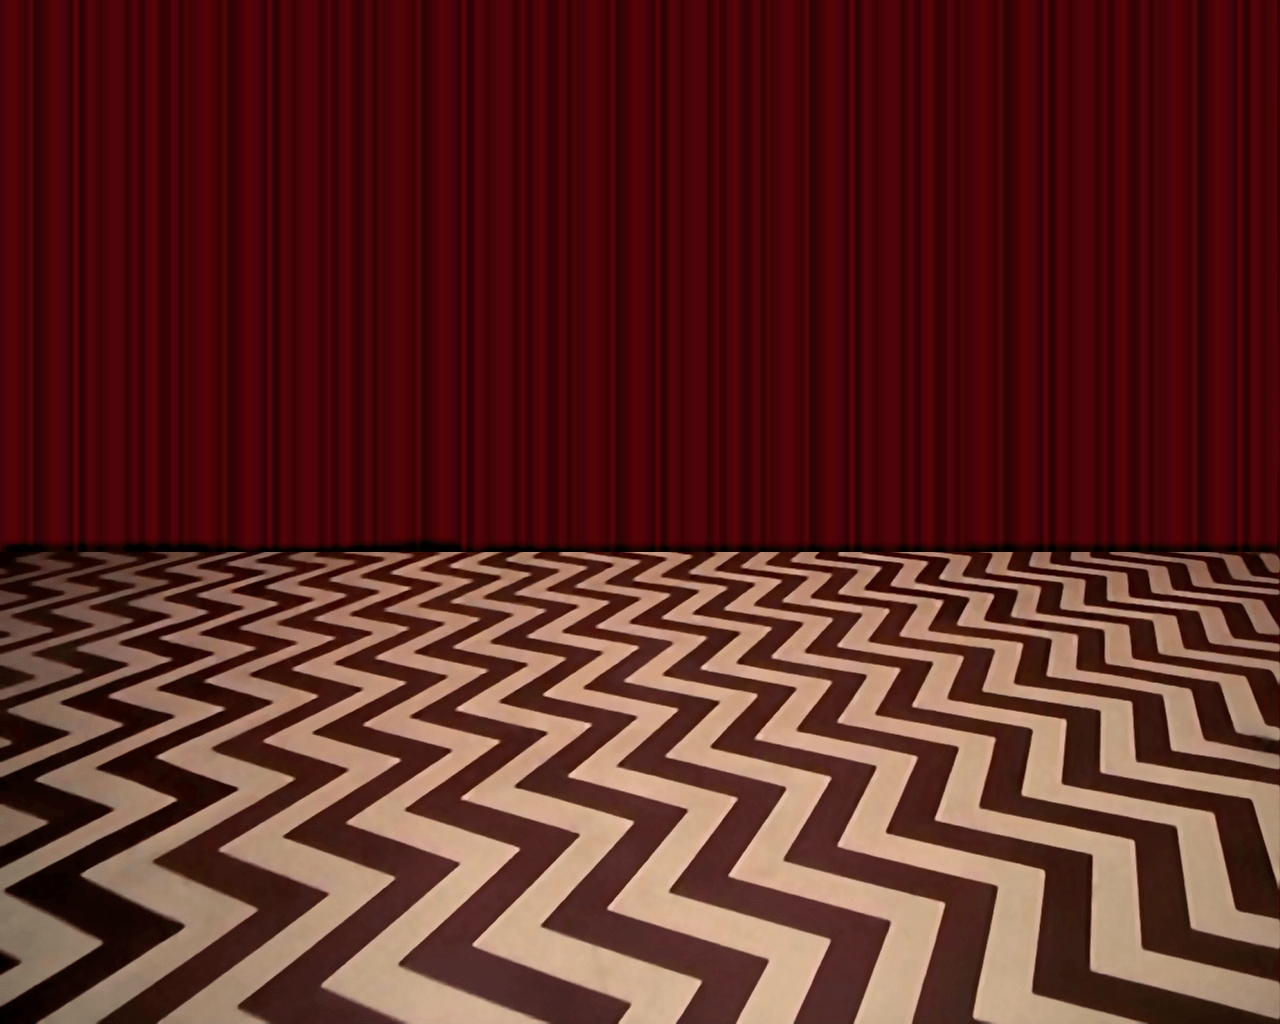 twin peaks wallpapers - wallpaper cave